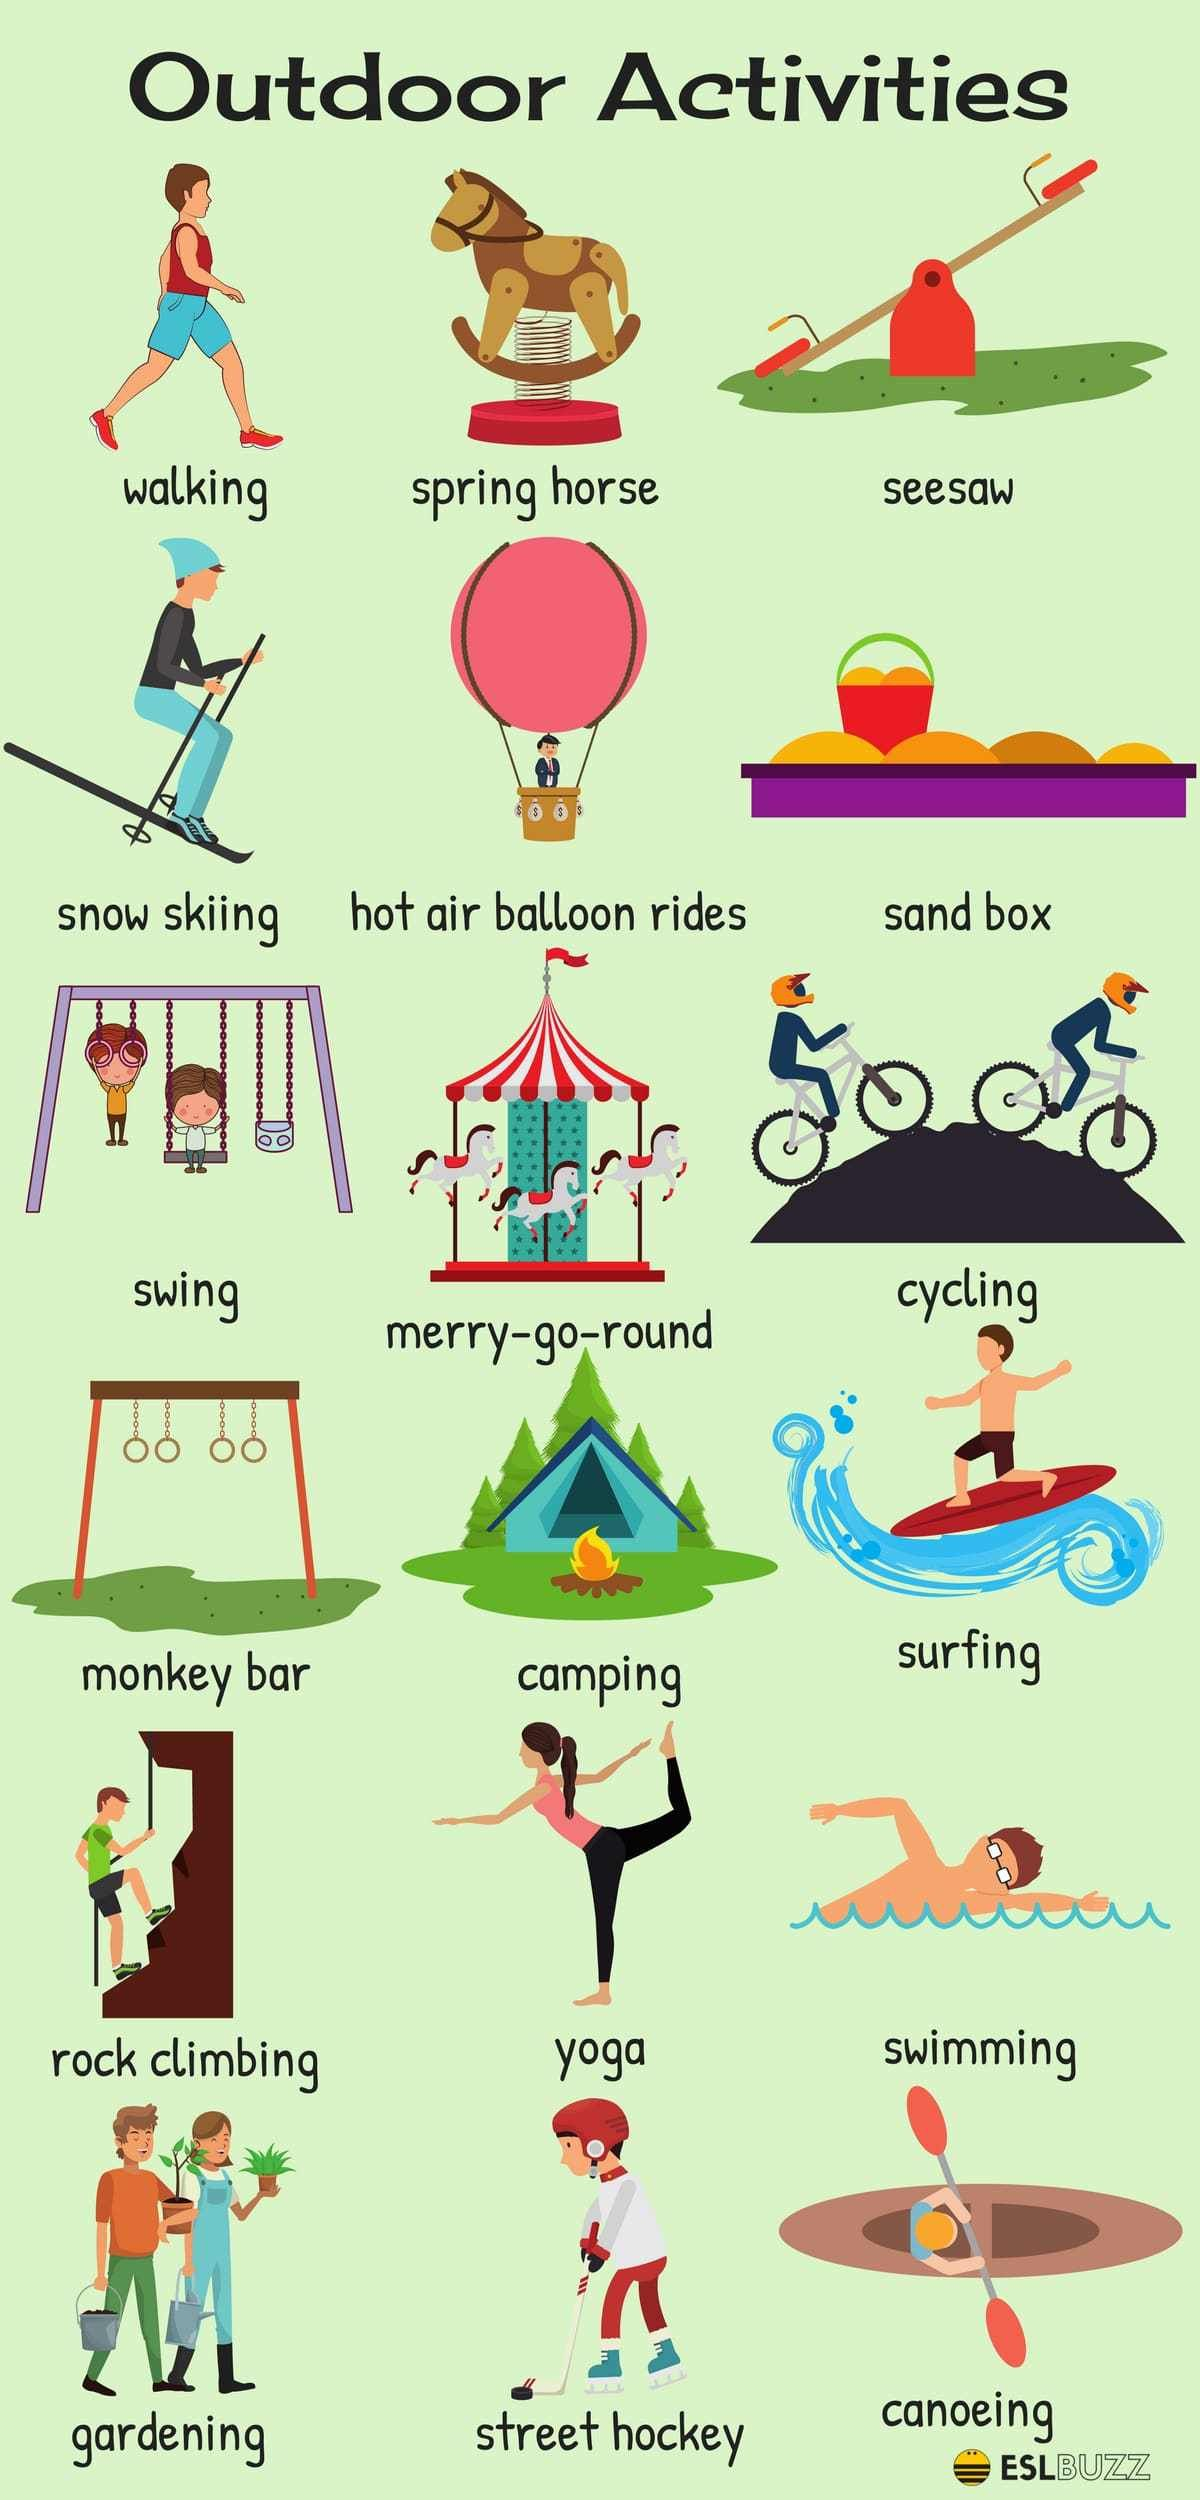 outdoor activities vocabulary in english english usages english rh pinterest com